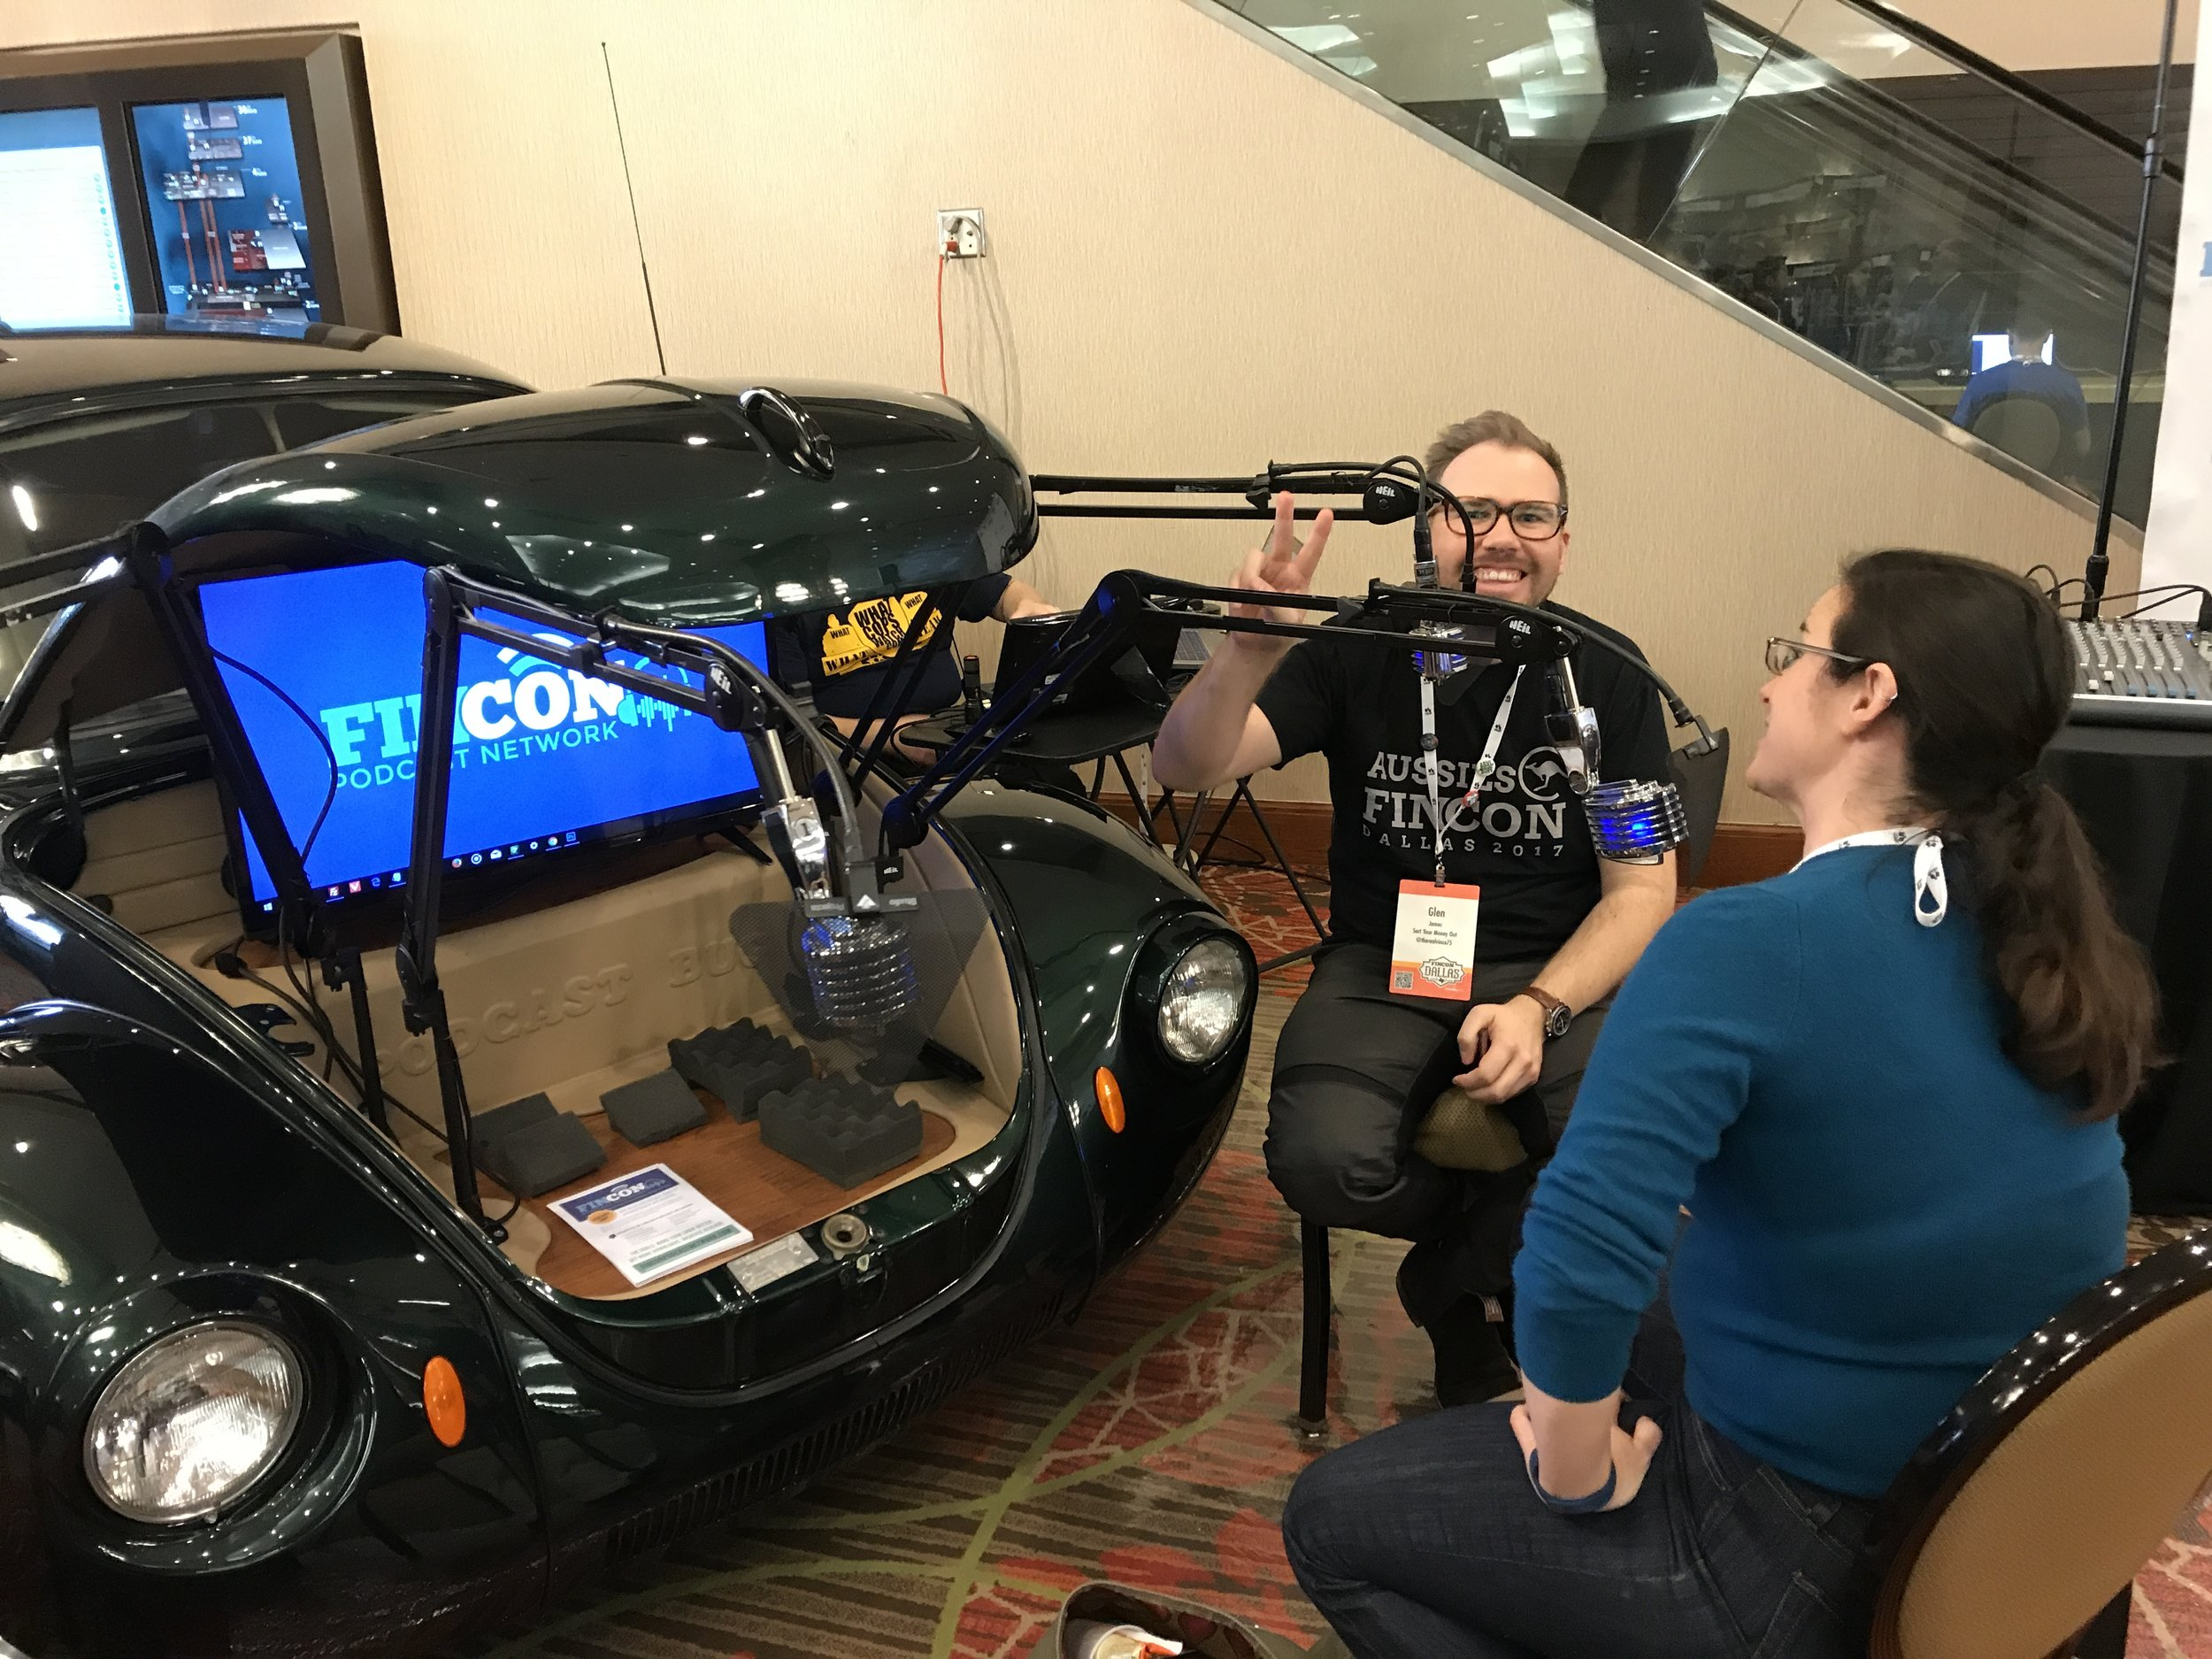 THE BEETLE - We got to record episode 4, live on the conference expo floor out of the hood of a Beetle. It actually drives, too!